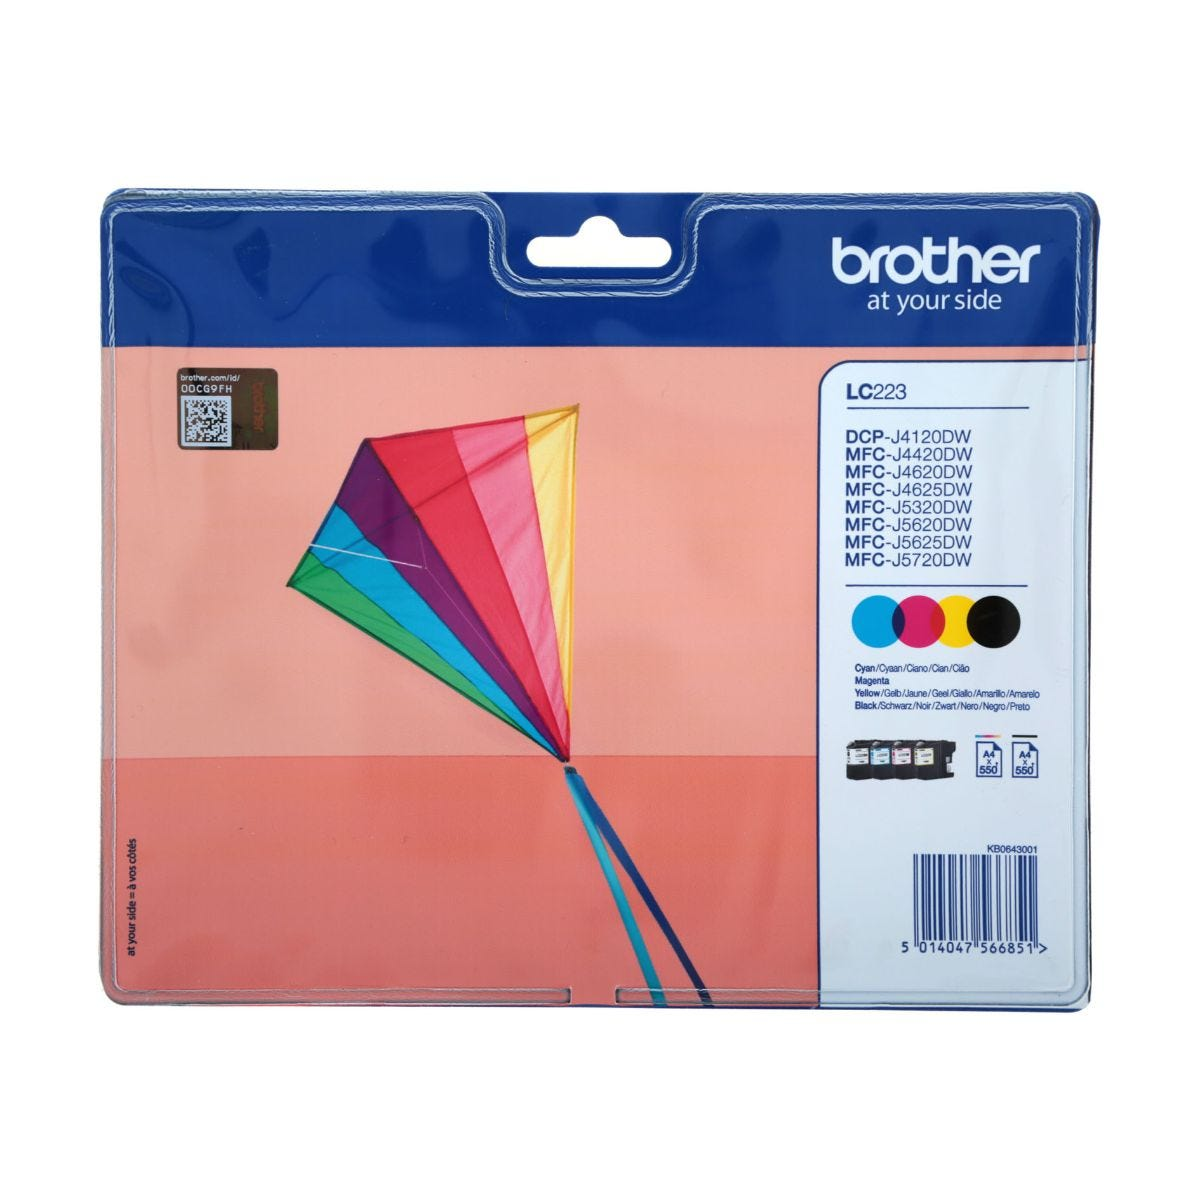 Image of Brother LC223 Ink Cartridge Value Pack